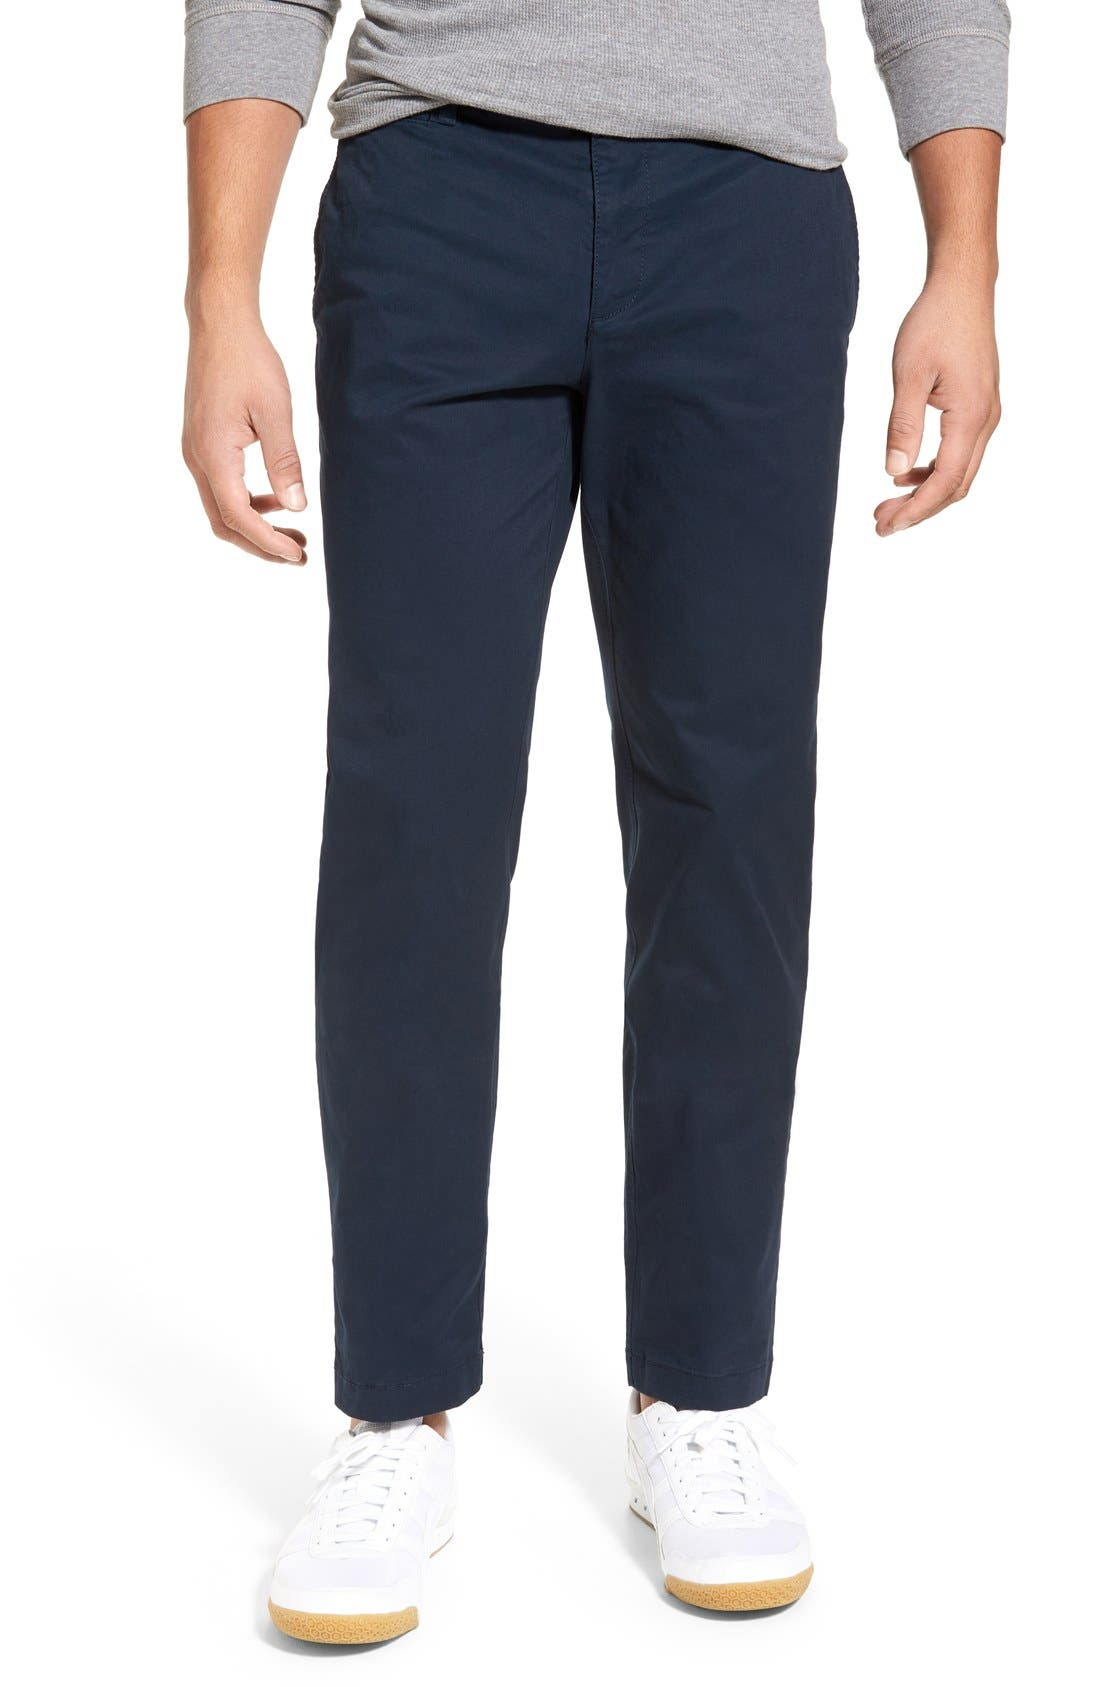 Original Penguin 'P55' Straight Leg Stretch Pants